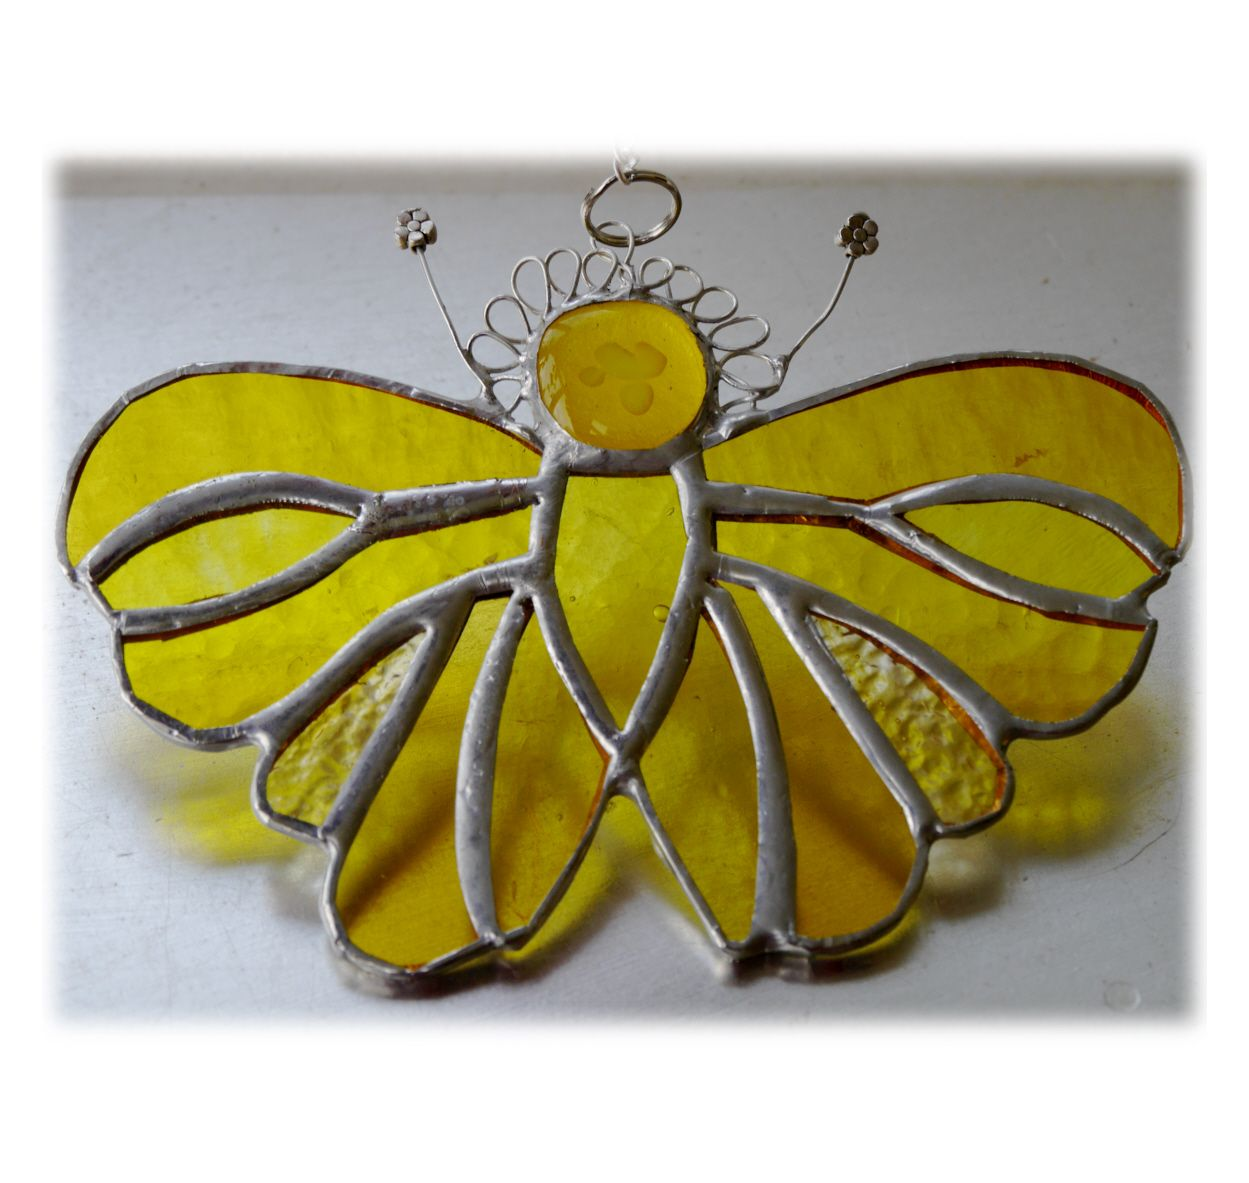 Butterfly Full 098 Yellow #1909 FREE 14.50